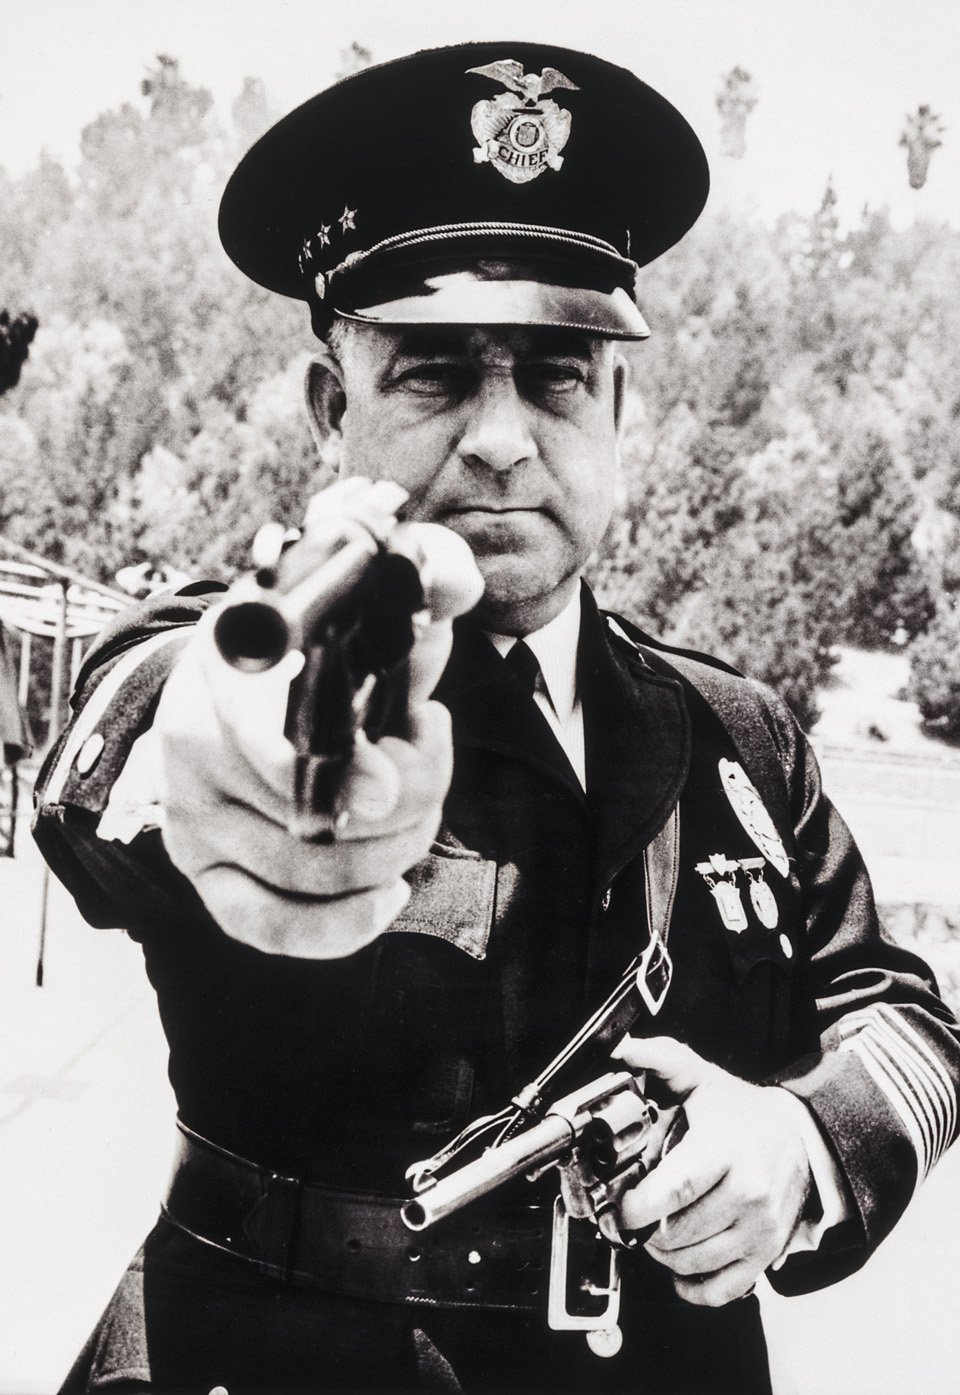 p.132, James Davis, alias « Two Gun », était l'emblème de la corruption au sein de la police de Los Angeles, 1937. Copyright Cliff Wesselmann Photo Courtesy of Gregory Paul Williams, BL Press LLC/TASCHEN.